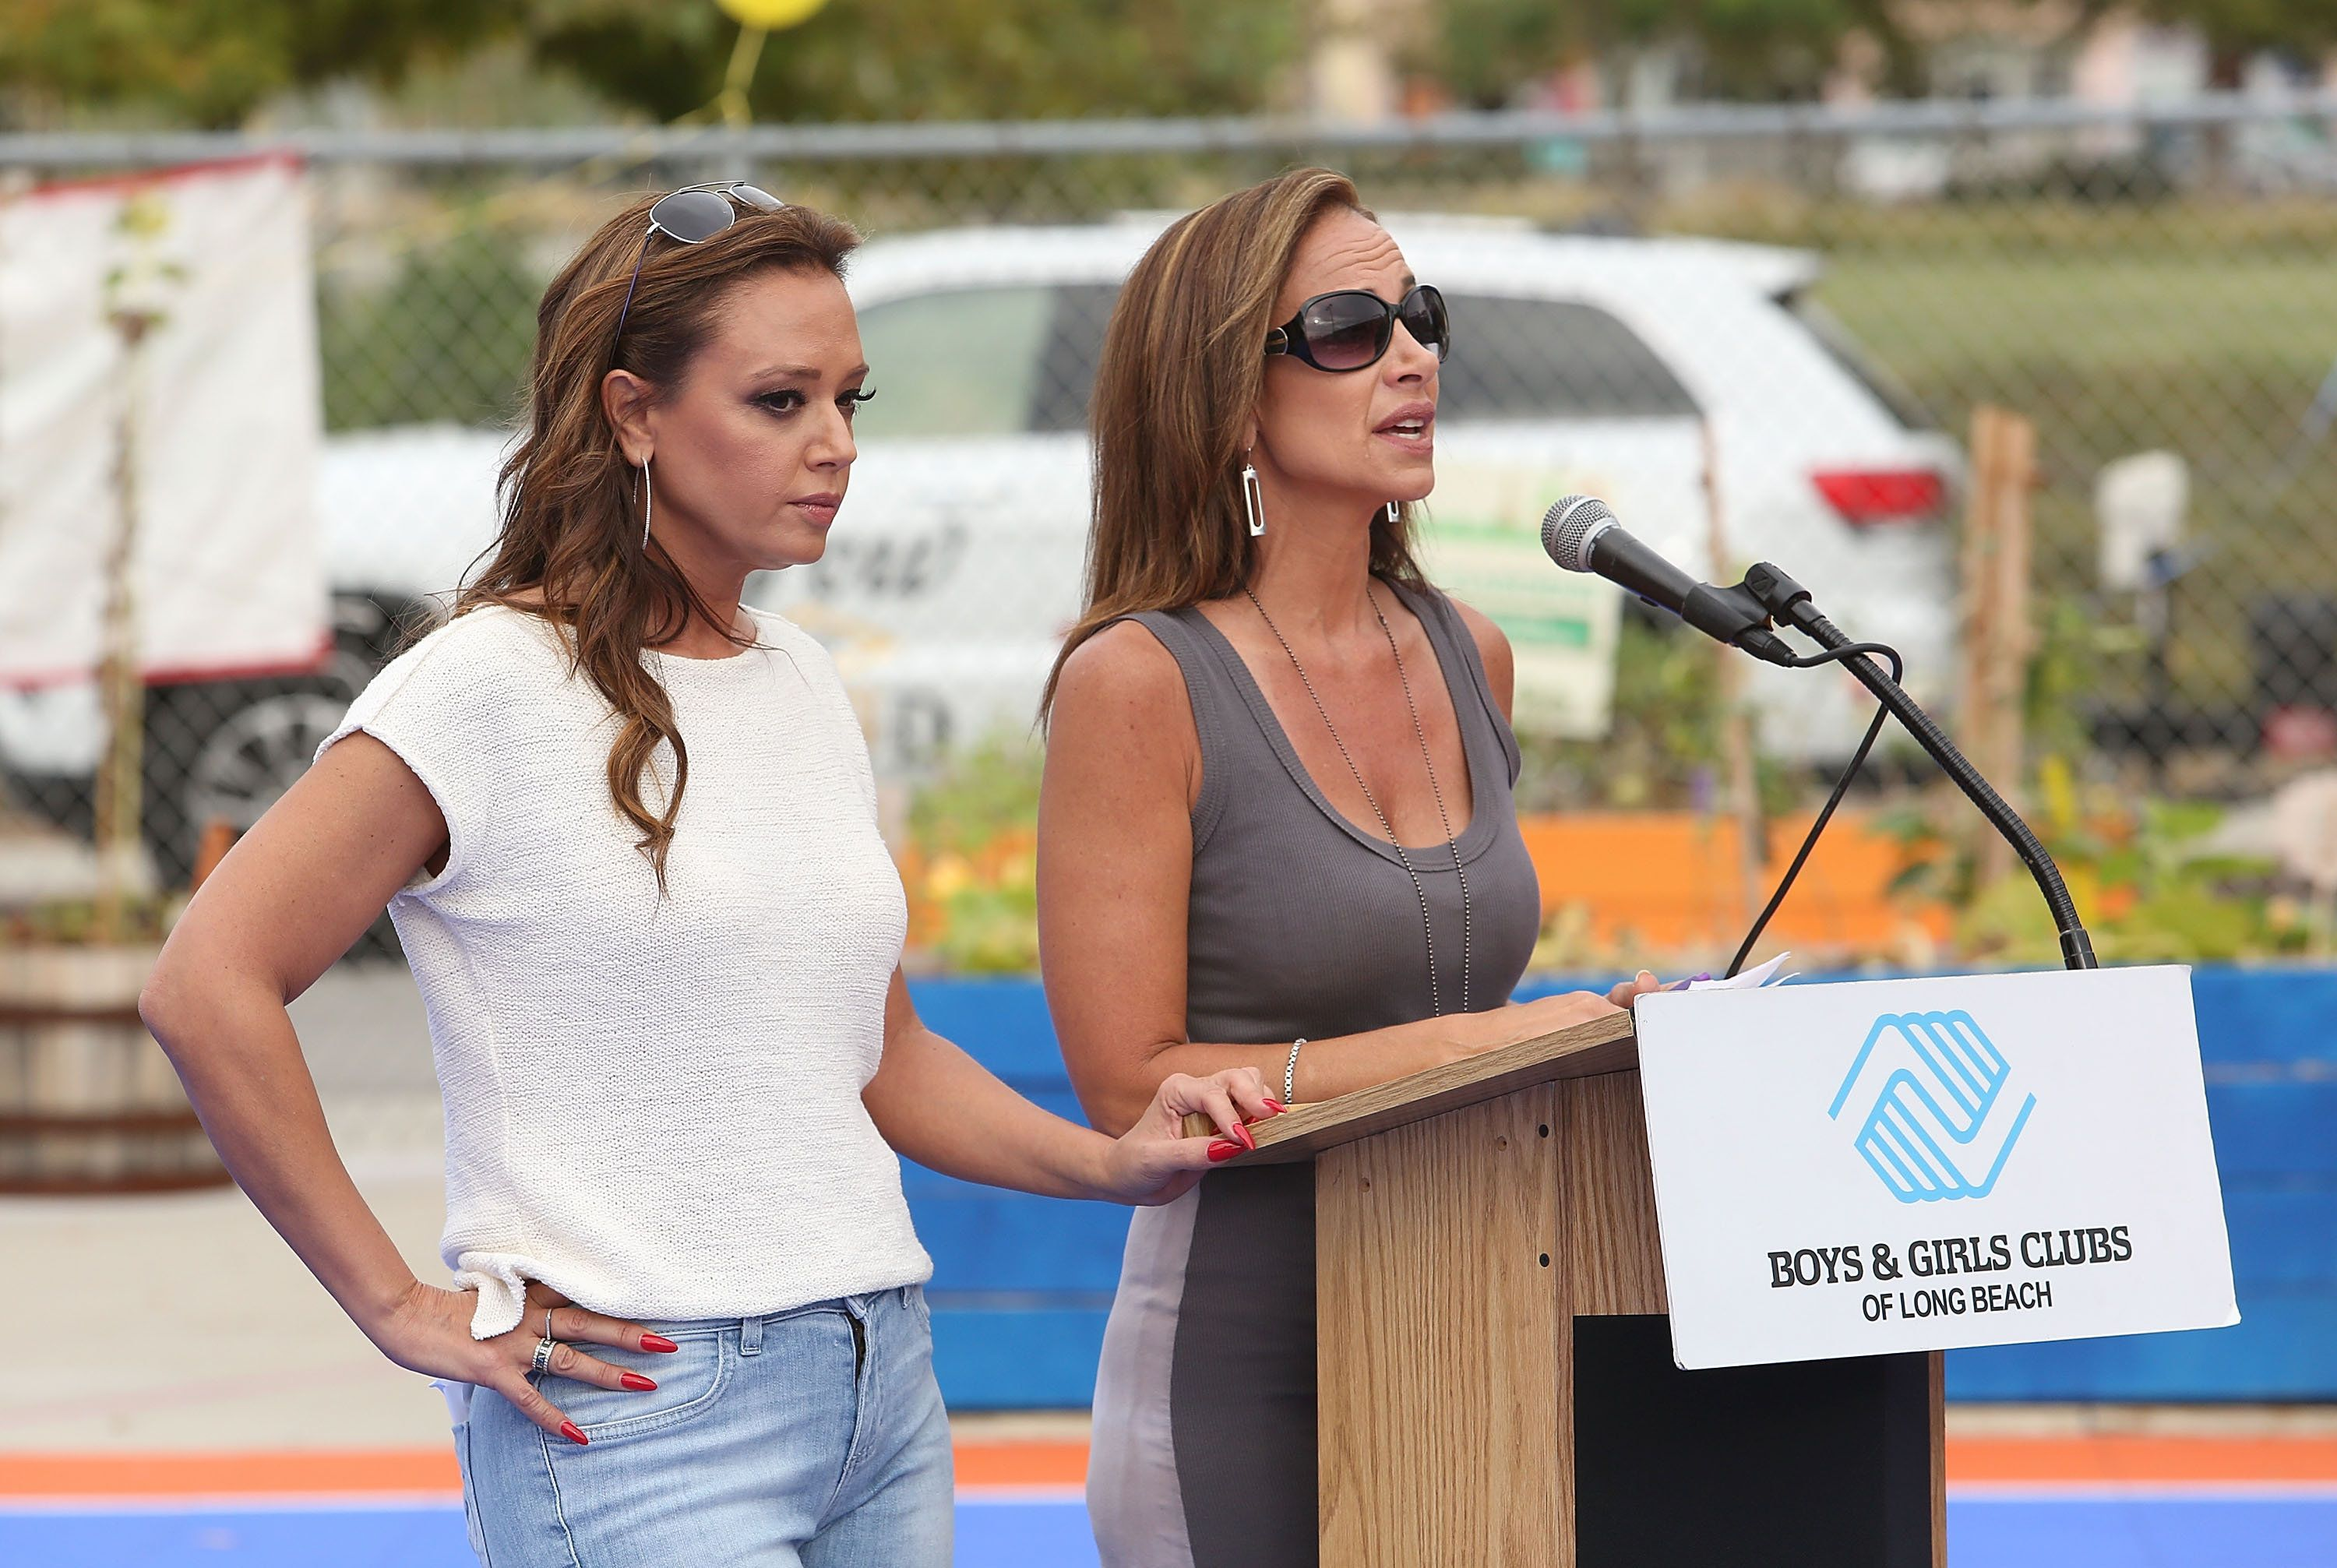 LONG BEACH, CA - SEPTEMBER 21:  Actresses Leah Remini and Nicole Remini attend the Life is Good supports Dream Court opening BGCLB event on September 21, 2015 in Long Beach, California.  (Photo by Jesse Grant/Getty Images for Life is Good)